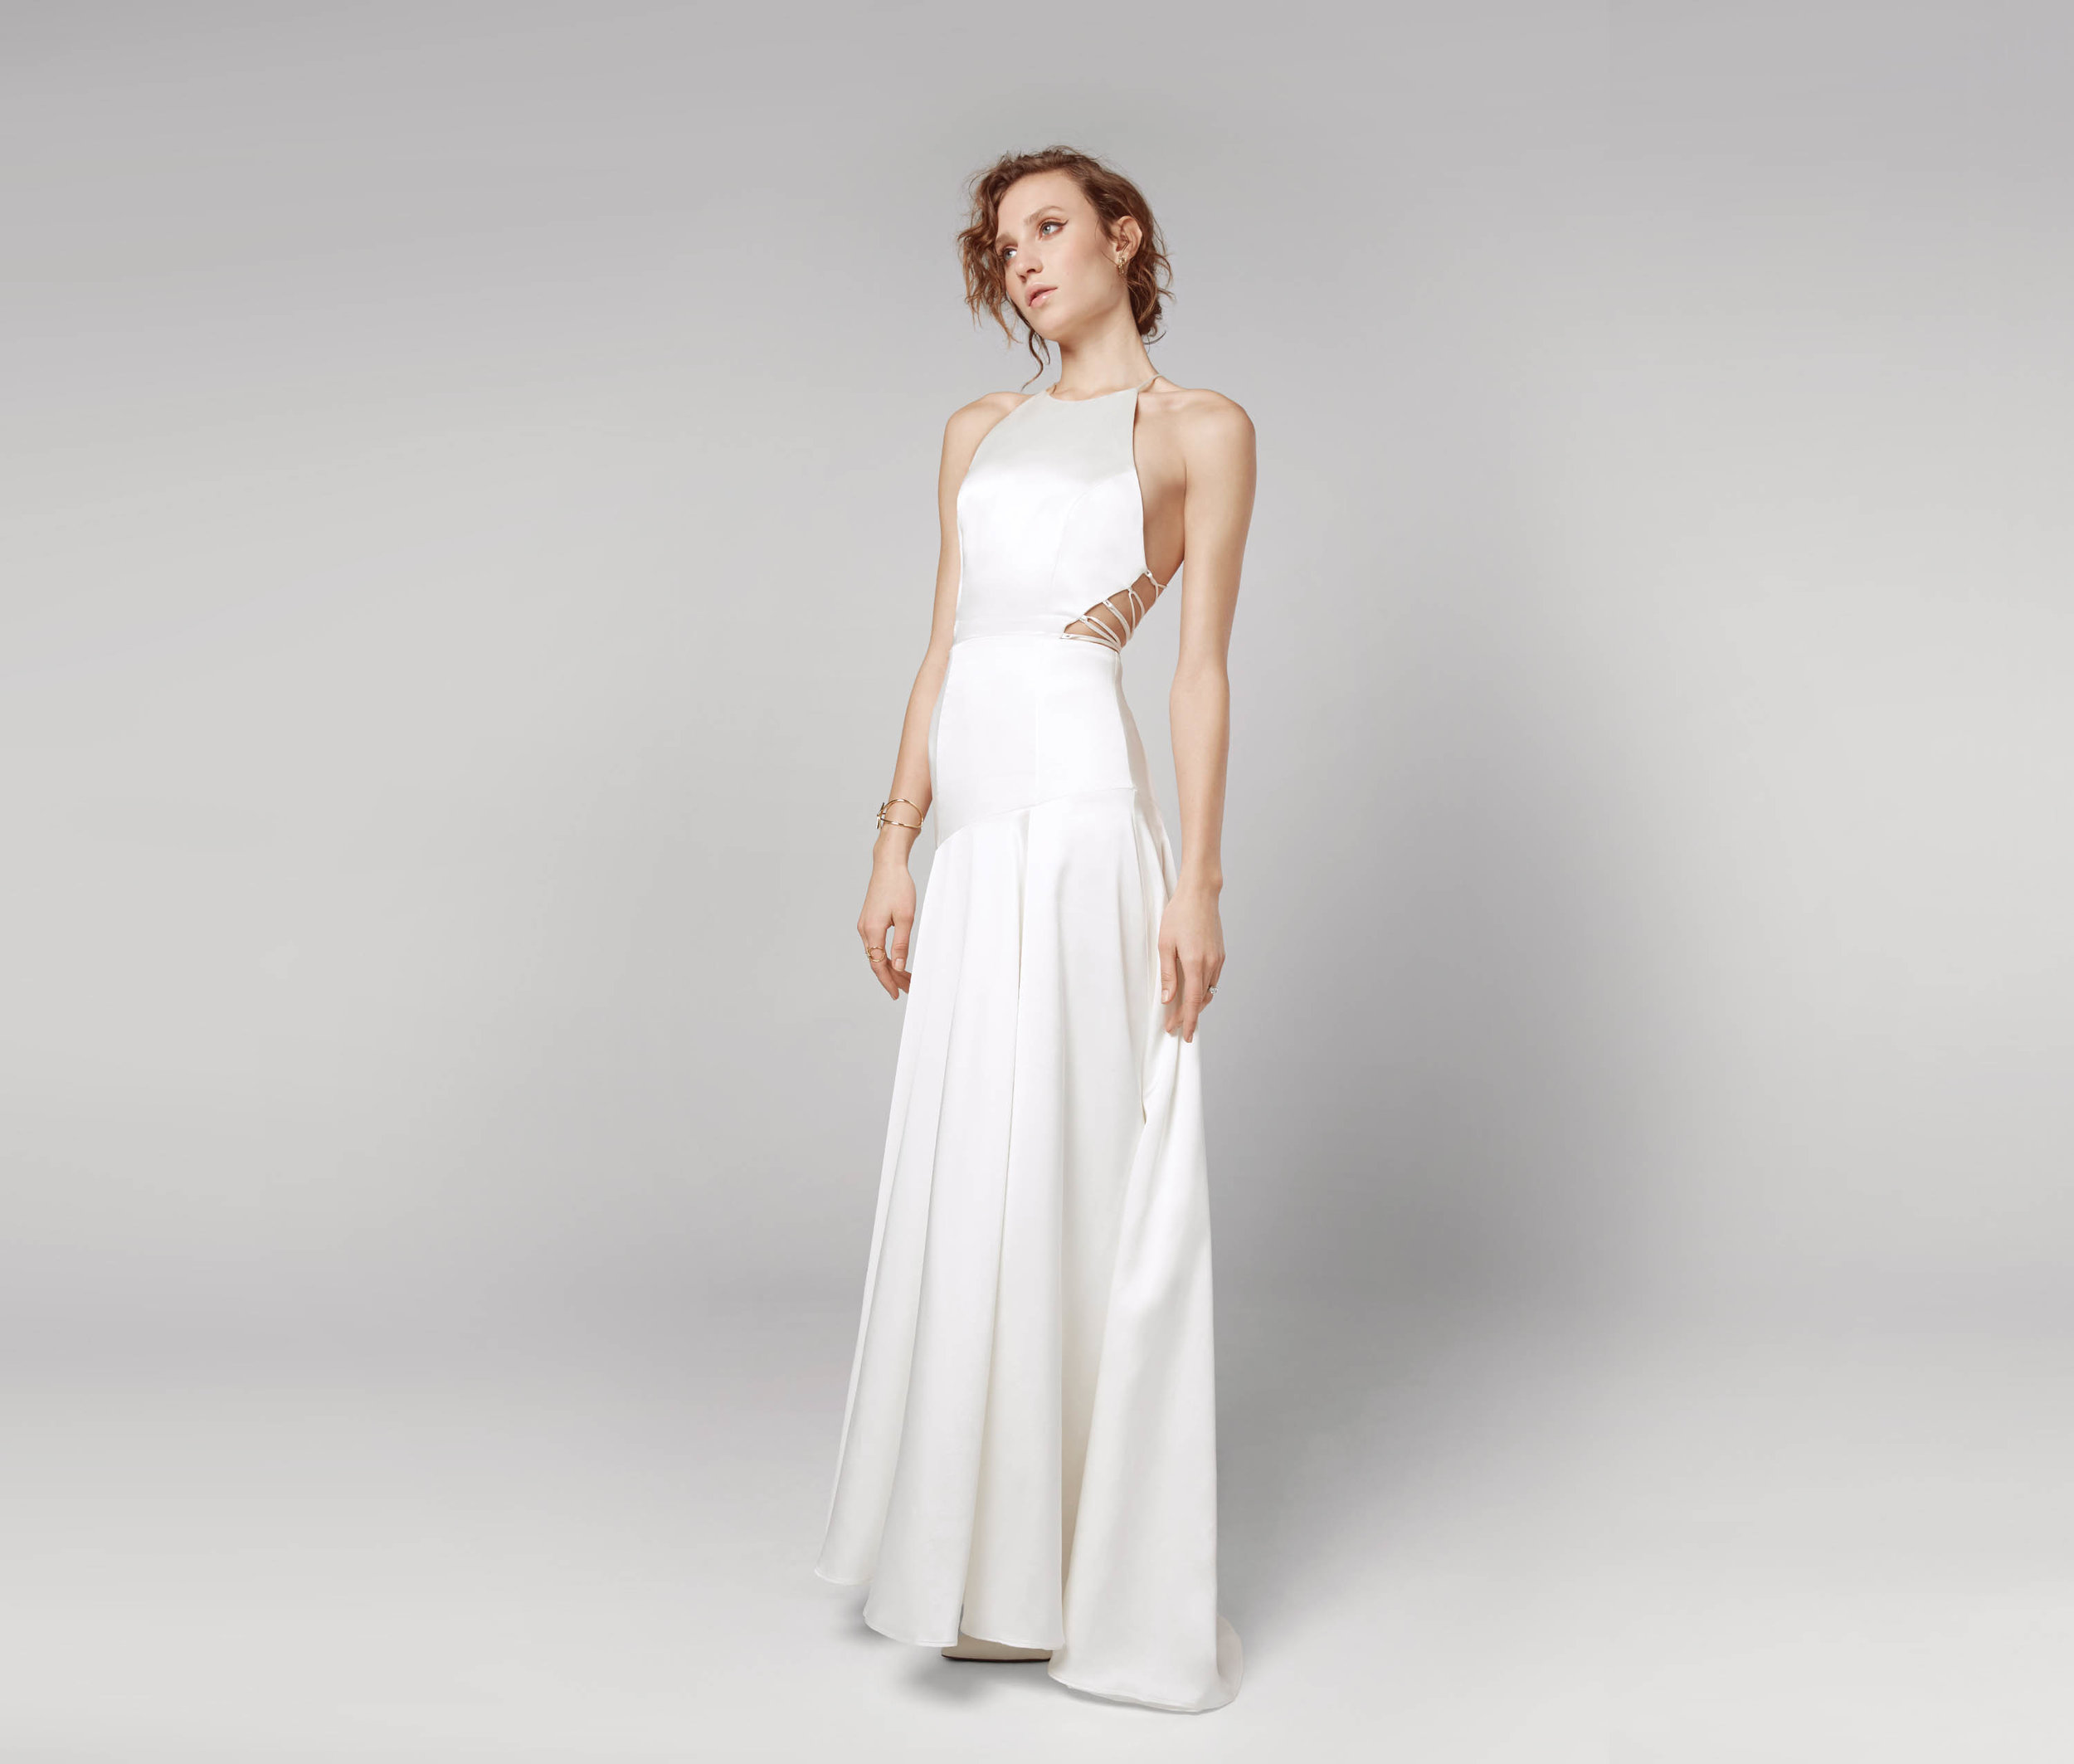 FAME & PARTNERS - The Victoria Gown